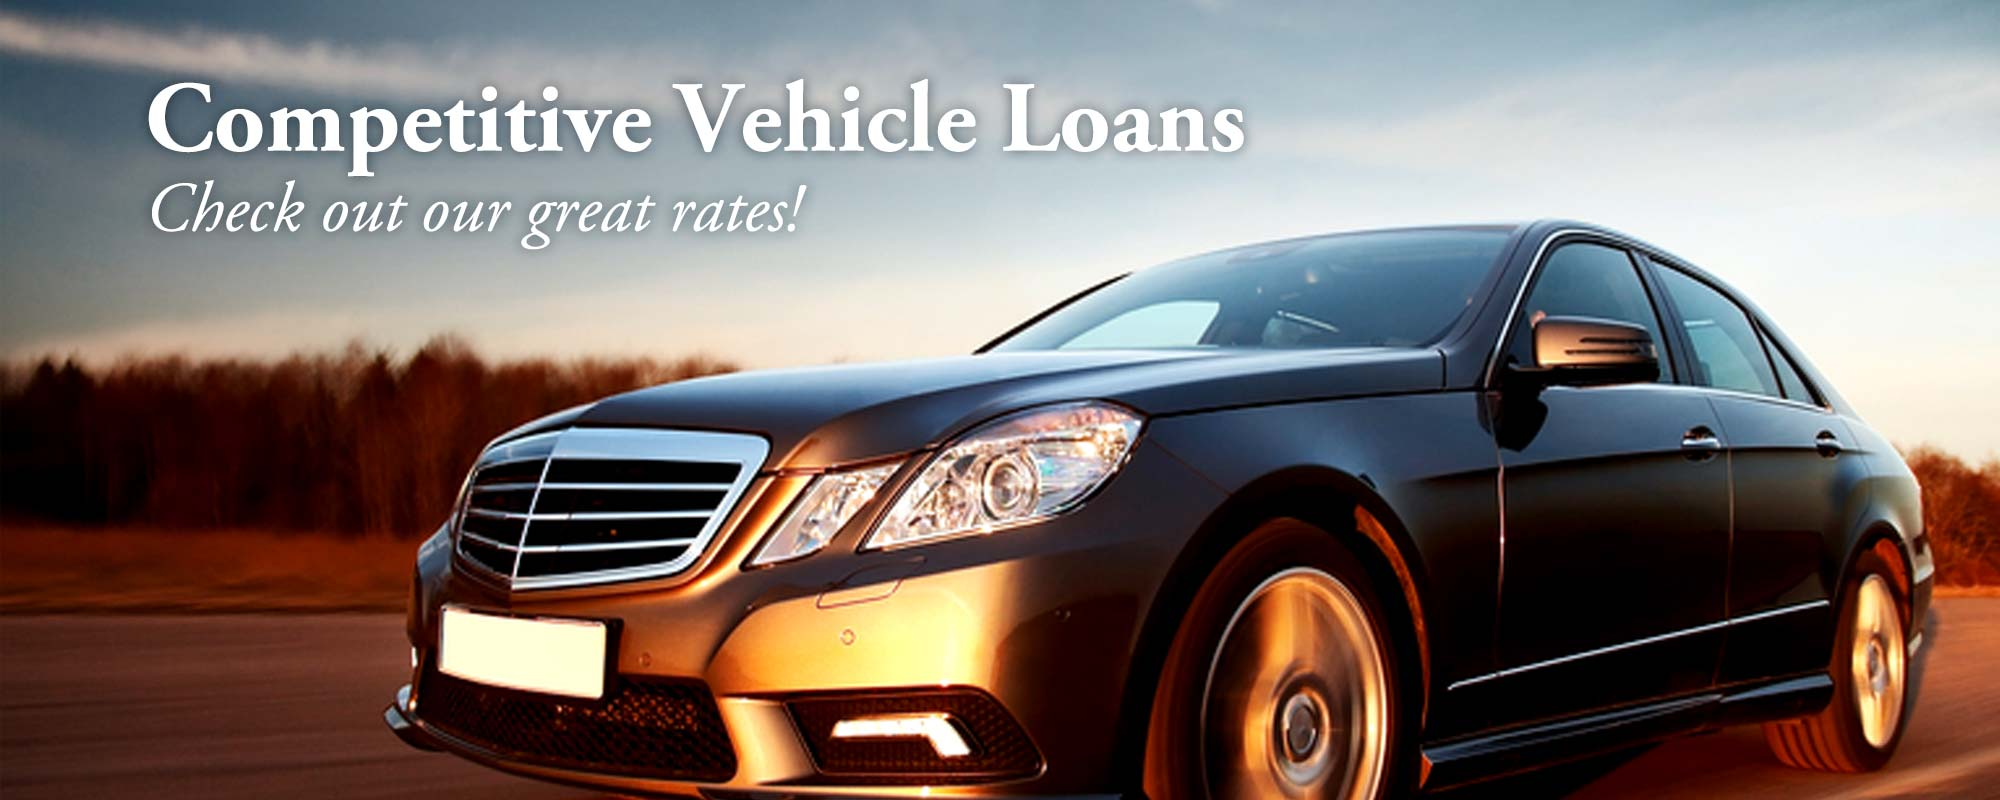 Check out our vehicle rates